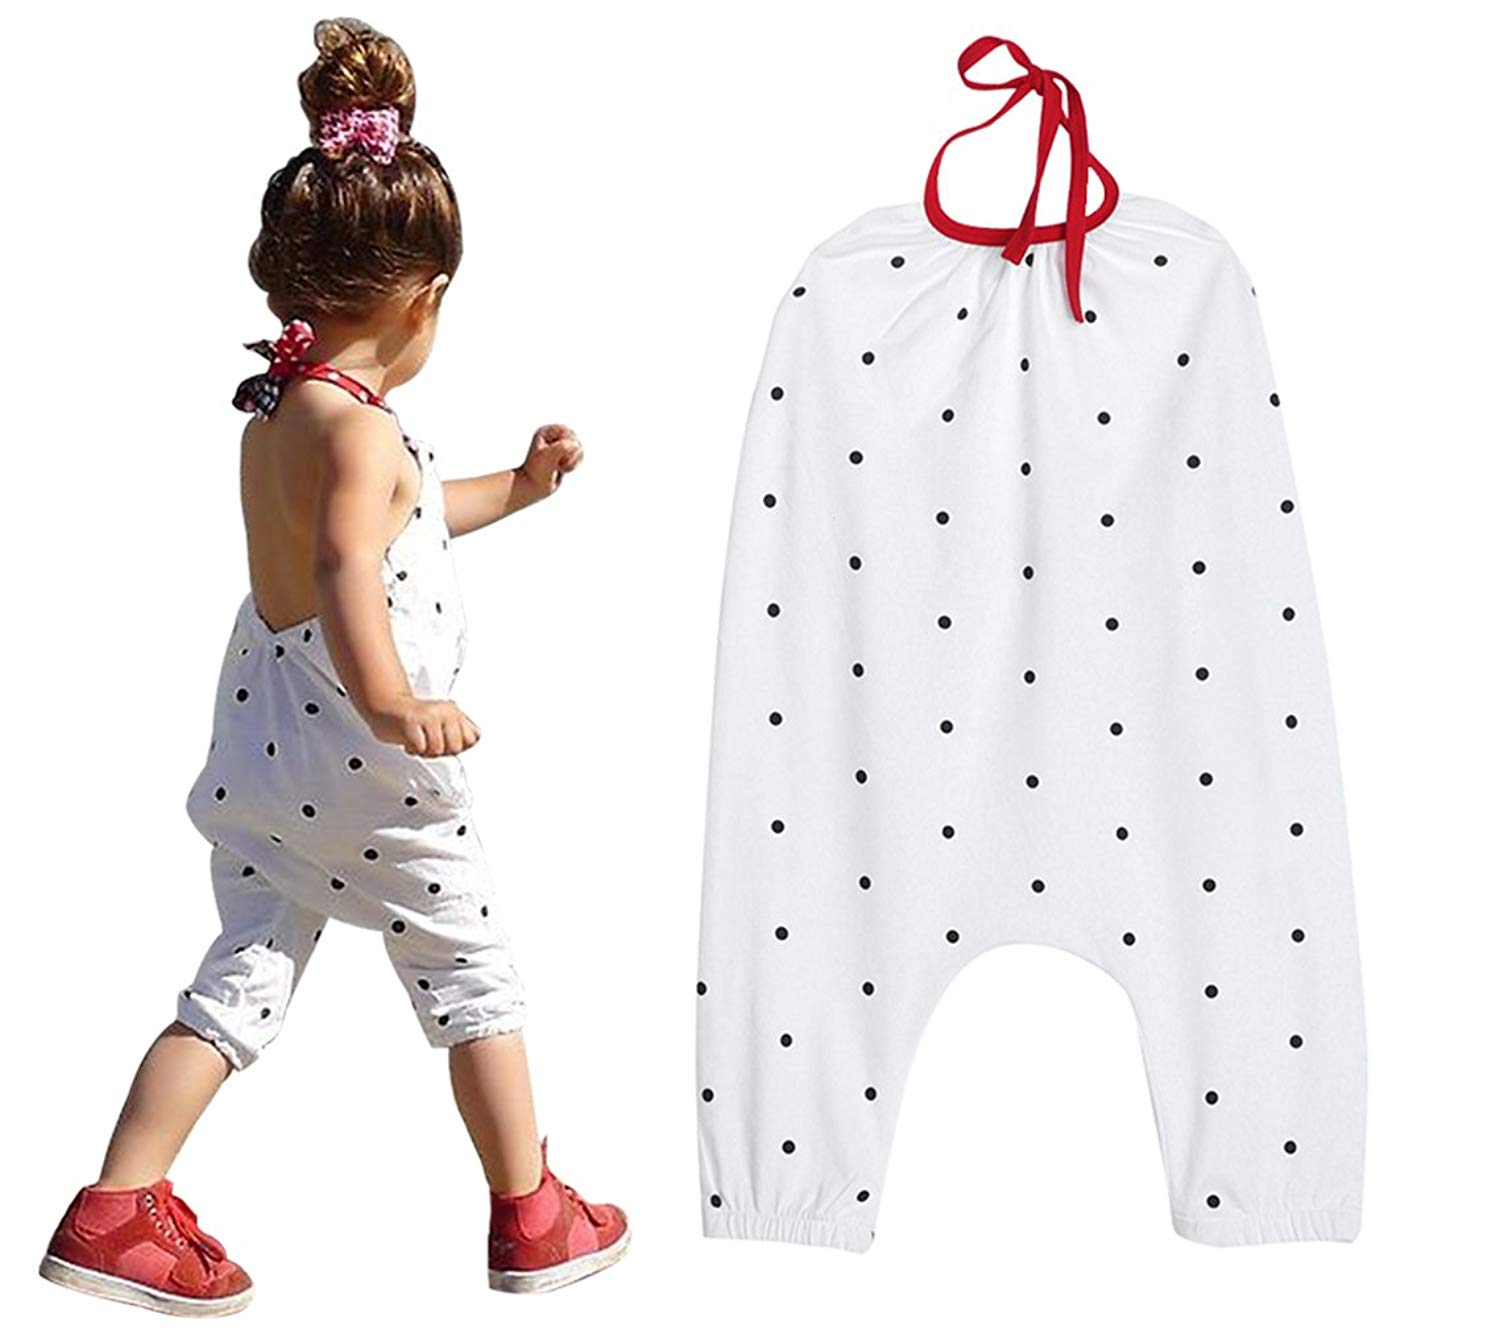 124d44ffa Get Quotations · EGELEXY Baby Girls Fashion Strap Polka Dot Harem Pants  Romper Jumpsuits Outfits